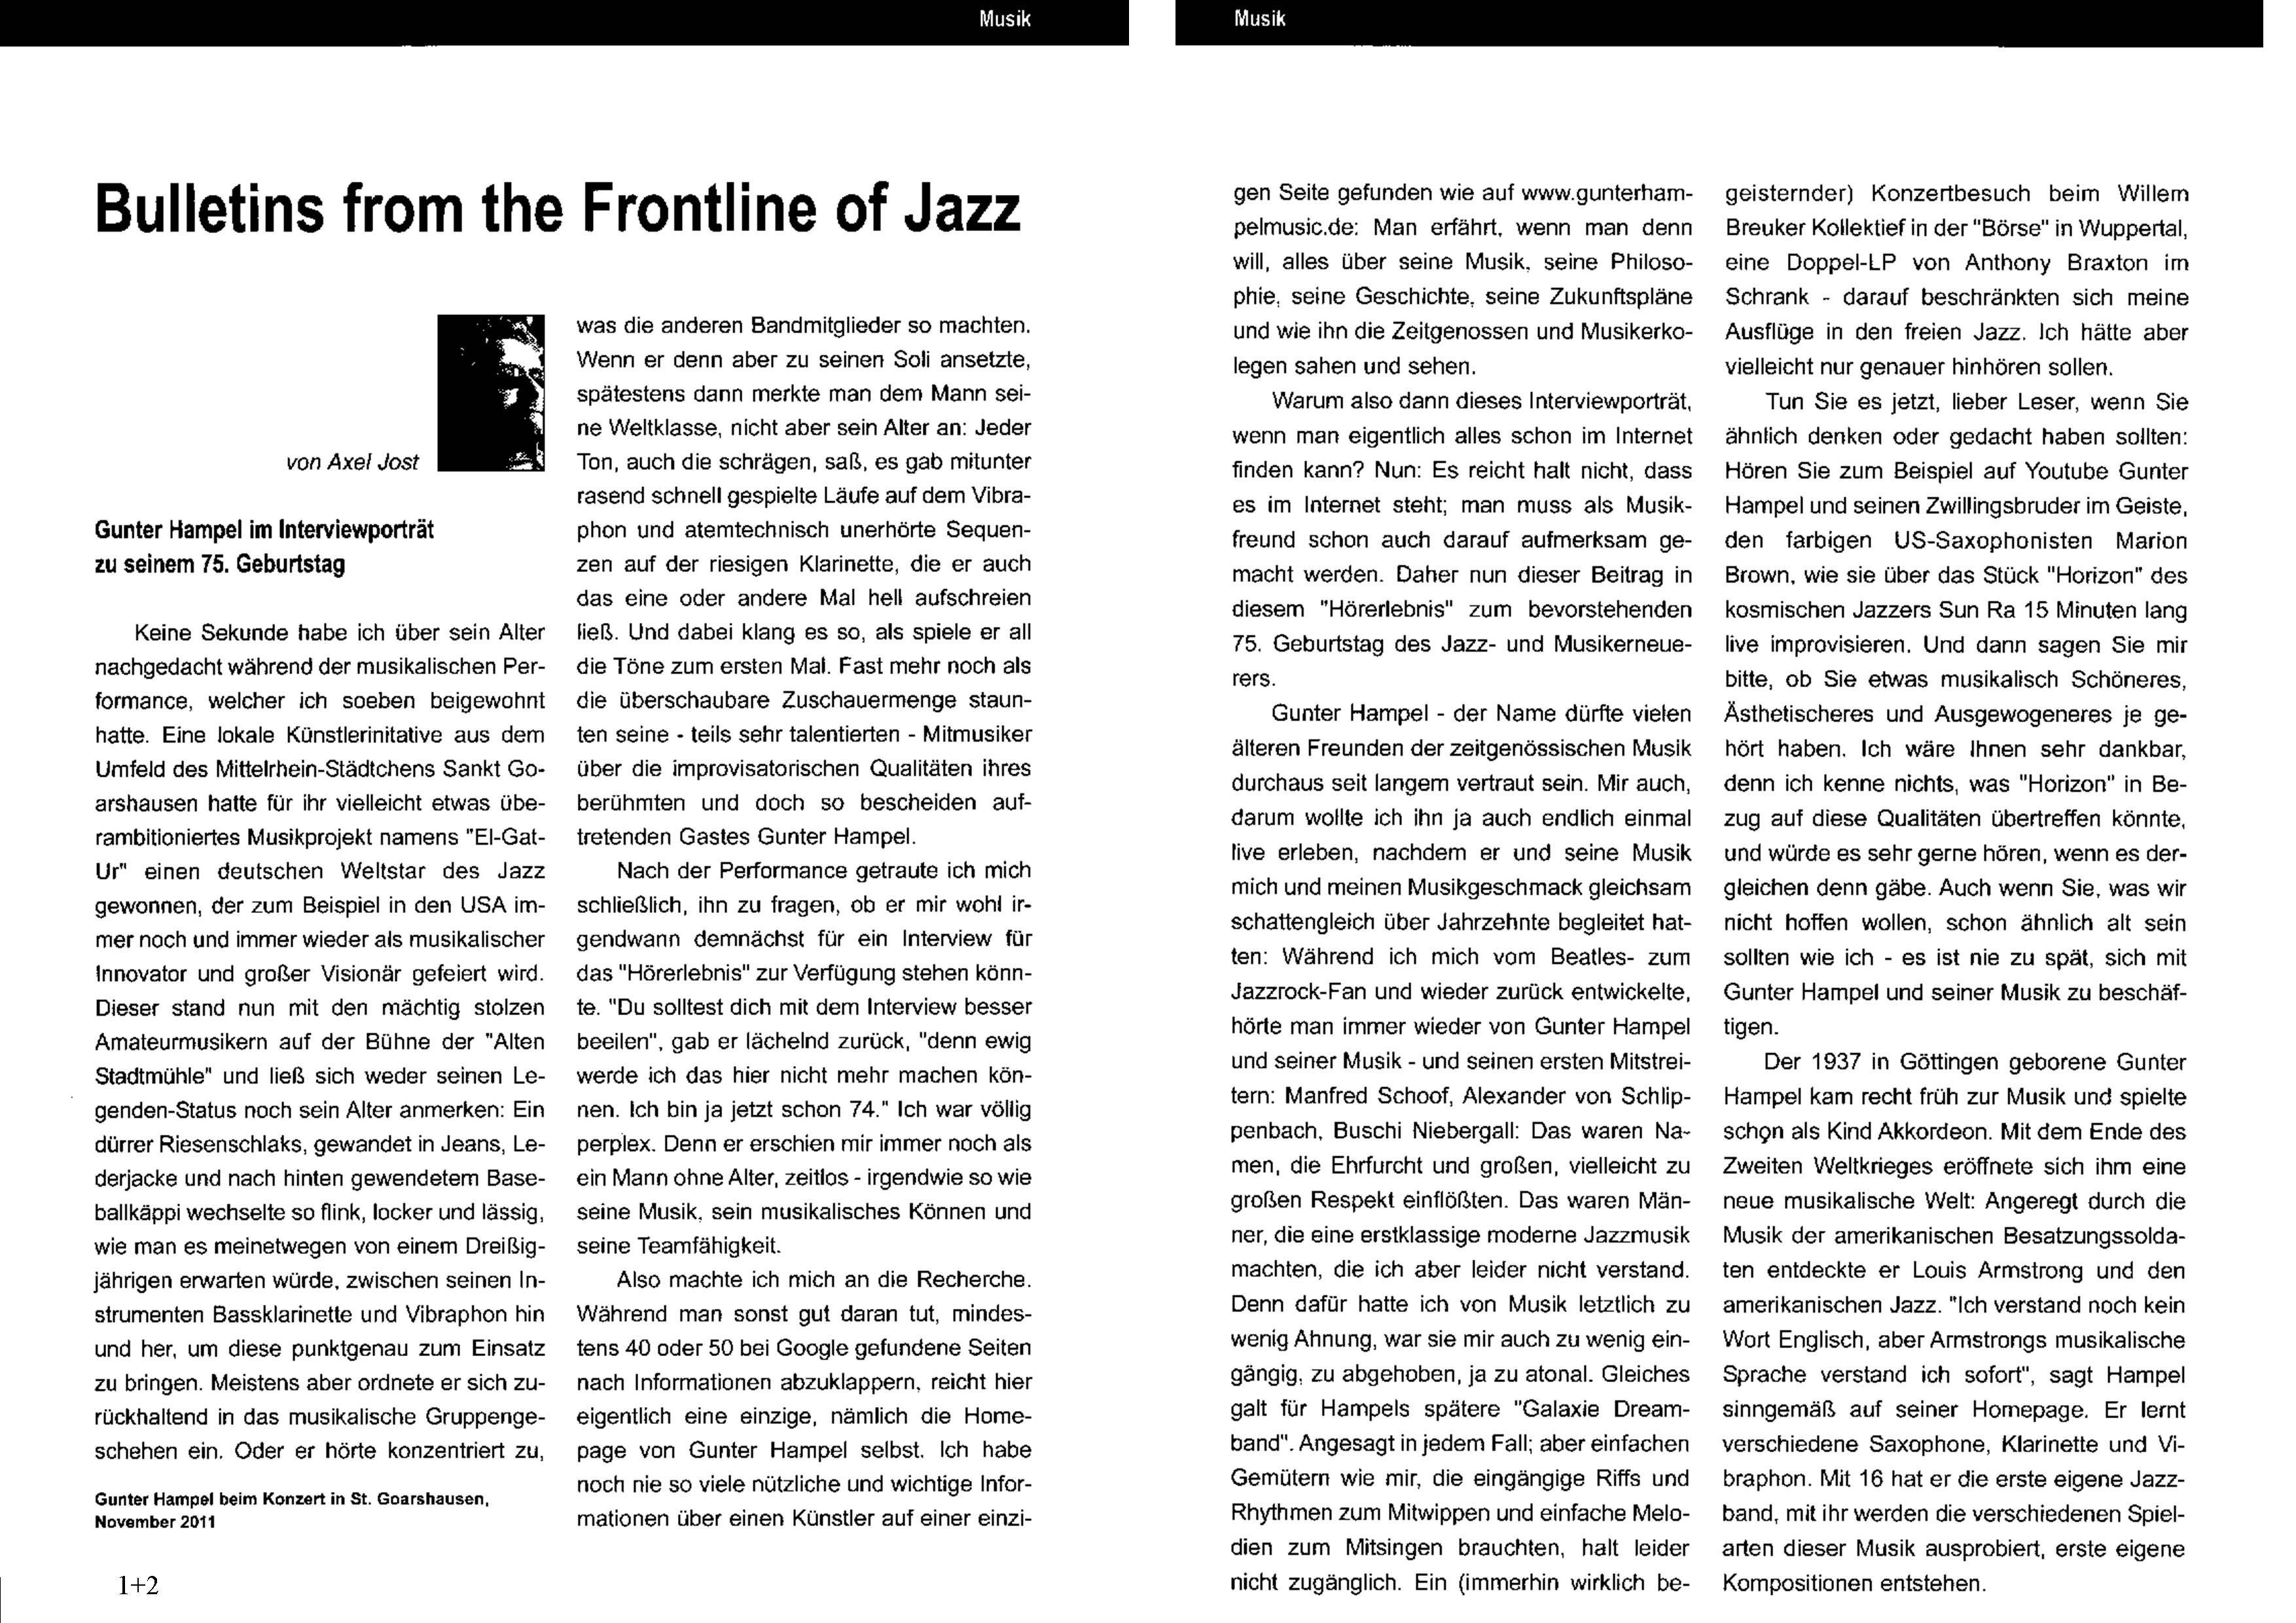 BULLETINS FROM THE FRONTLINE OF JAZZ